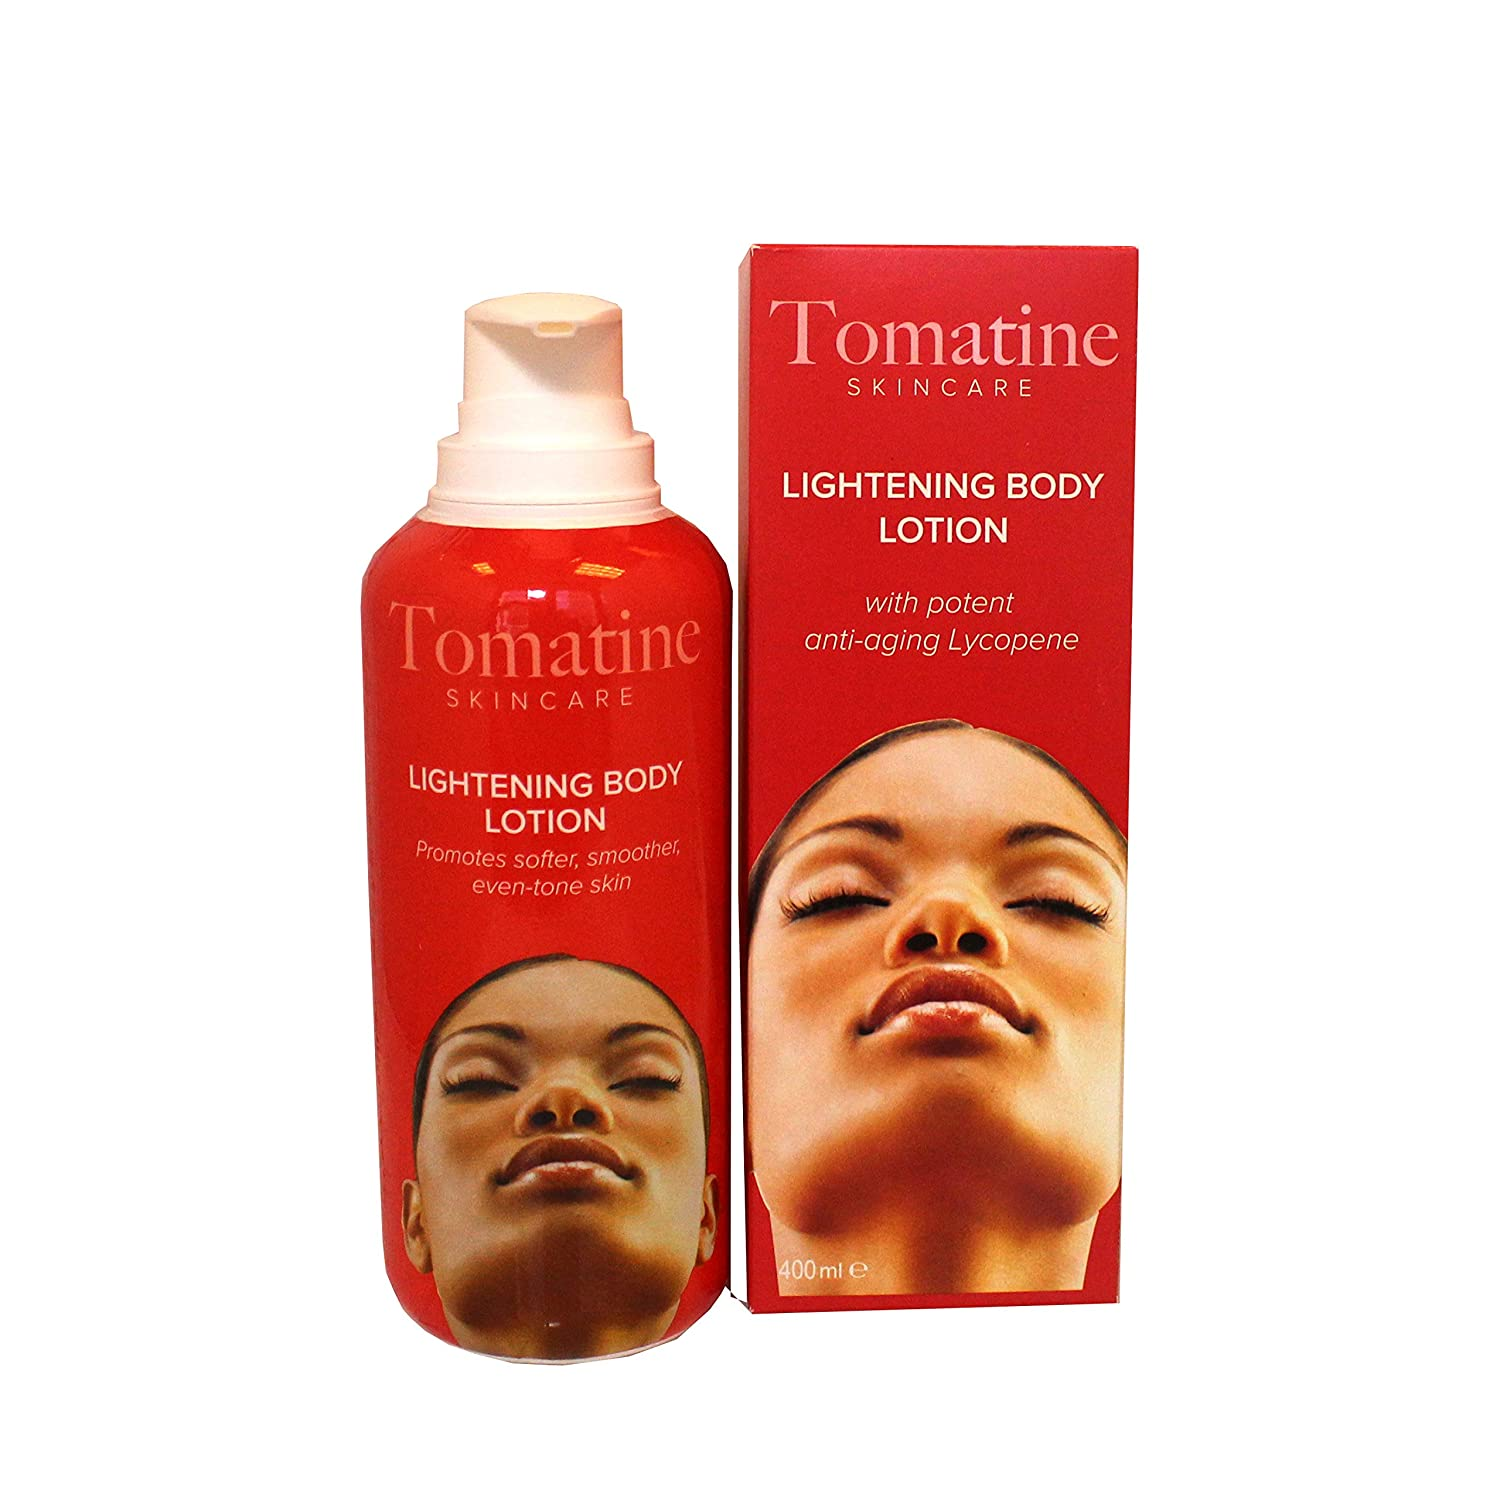 Tomatine Lightening Body Lotion 400ml - Formulate to Hydrate and Moistures Skin, Lightening Properties